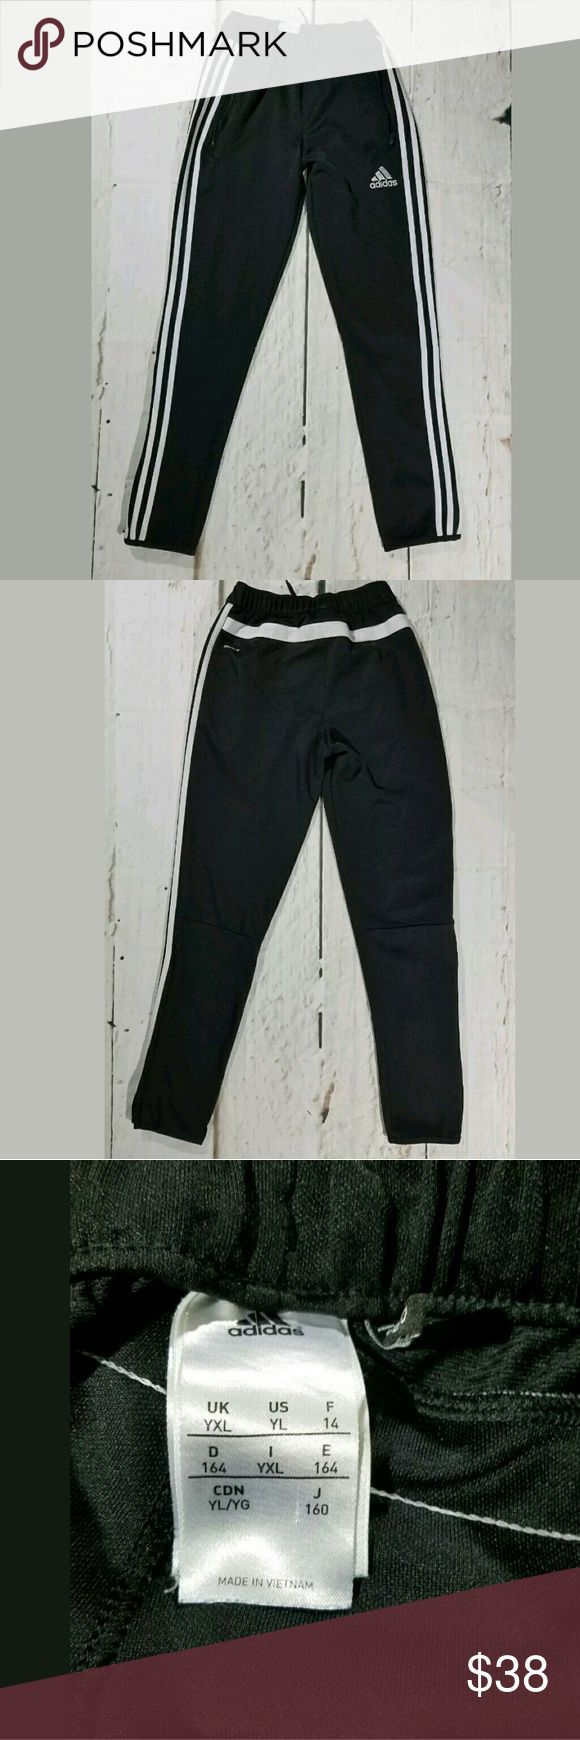 Kids Adidas Skinny Ankle Zippers Jogger Sweatpants Kids Adidas Skinny Ankle Zippers Jogger Sweatpants Black White XL   Excellent used condition.  Elastic /Drawstring waist with lots of stretch. 38 inch hips. 10.5 inch rise. 29 inch inseam.  LB Adidas Bottoms